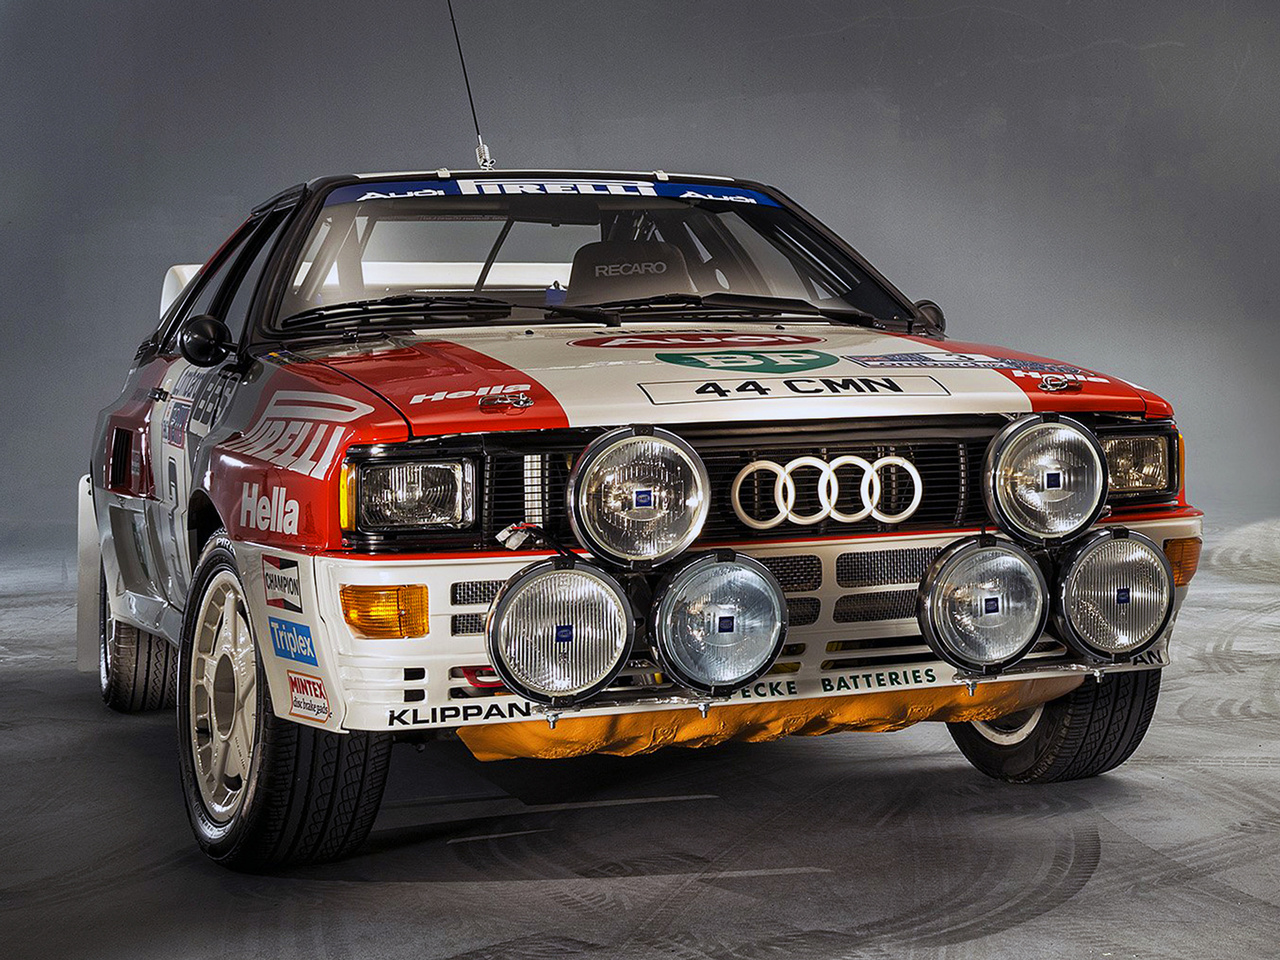 audi_quattro_group_4_rally_car_5